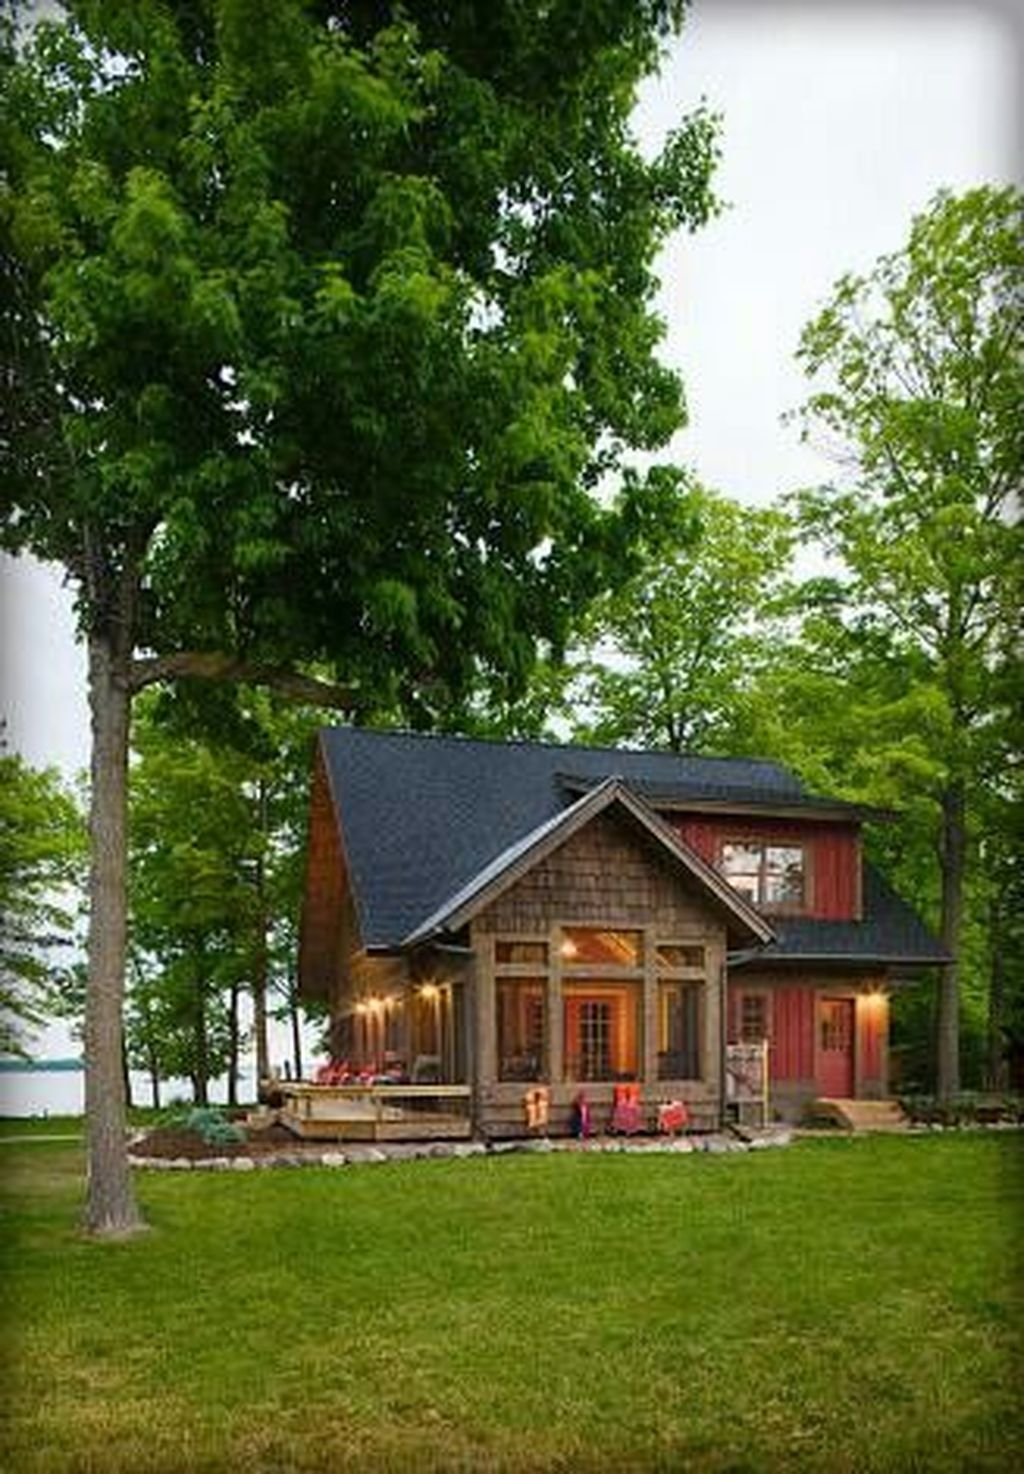 38 Inspiring Wooden Houses Design Ideas Eco Friendly Small Lake Houses Lake Houses Exterior Wooden House Design